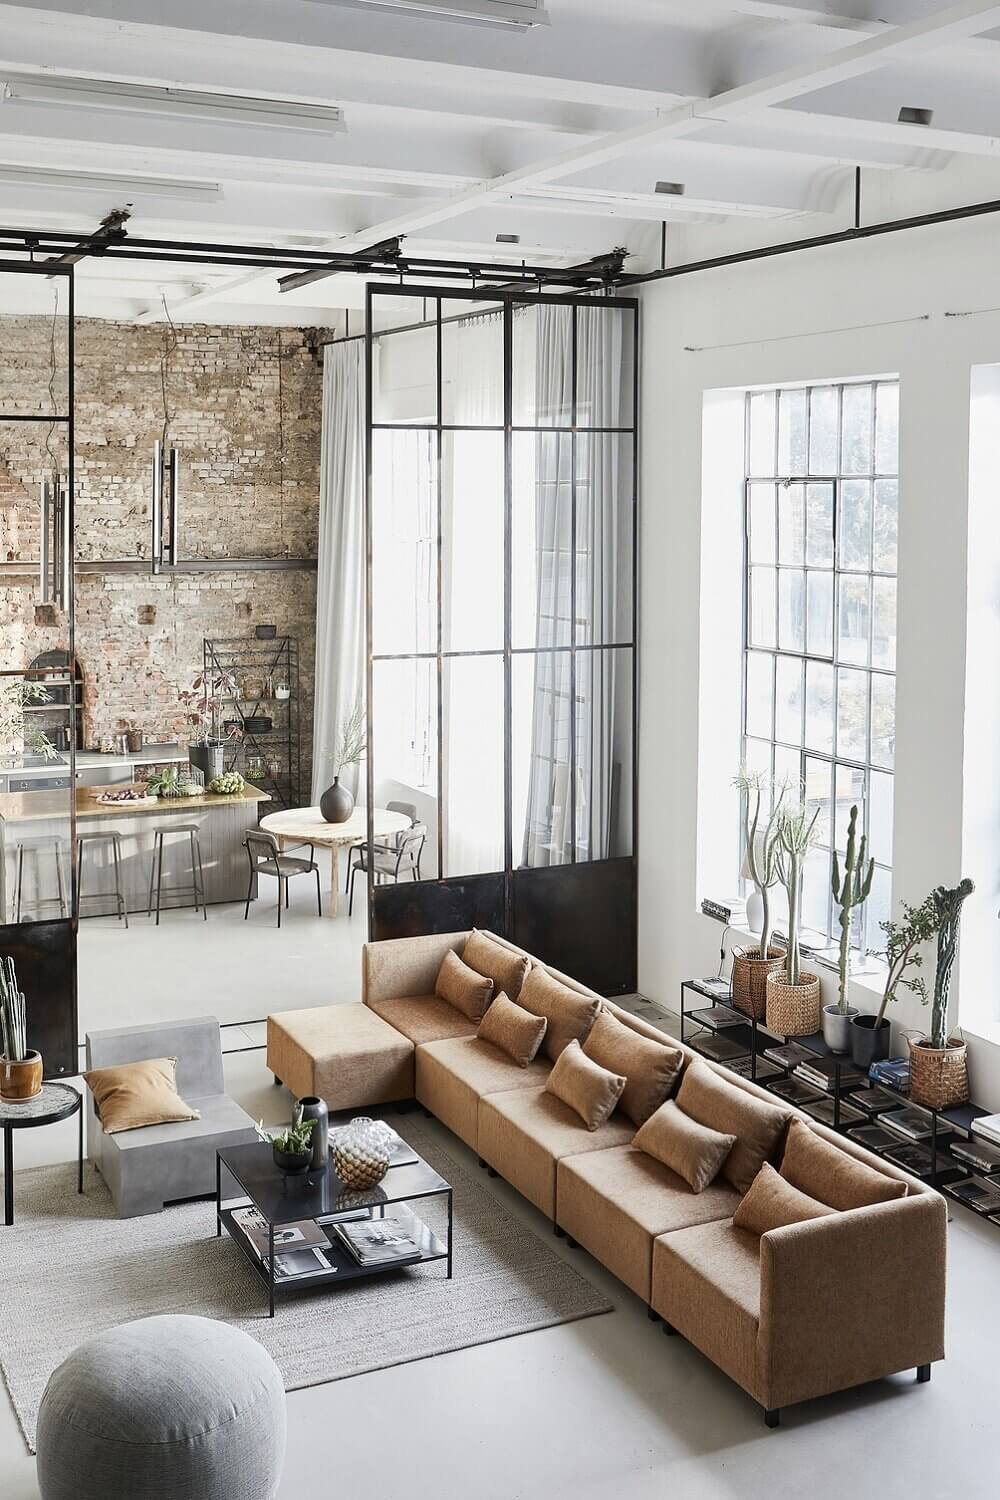 A Bright Industrial Loft Decorated With House Doctor's Spring/Summer Collection